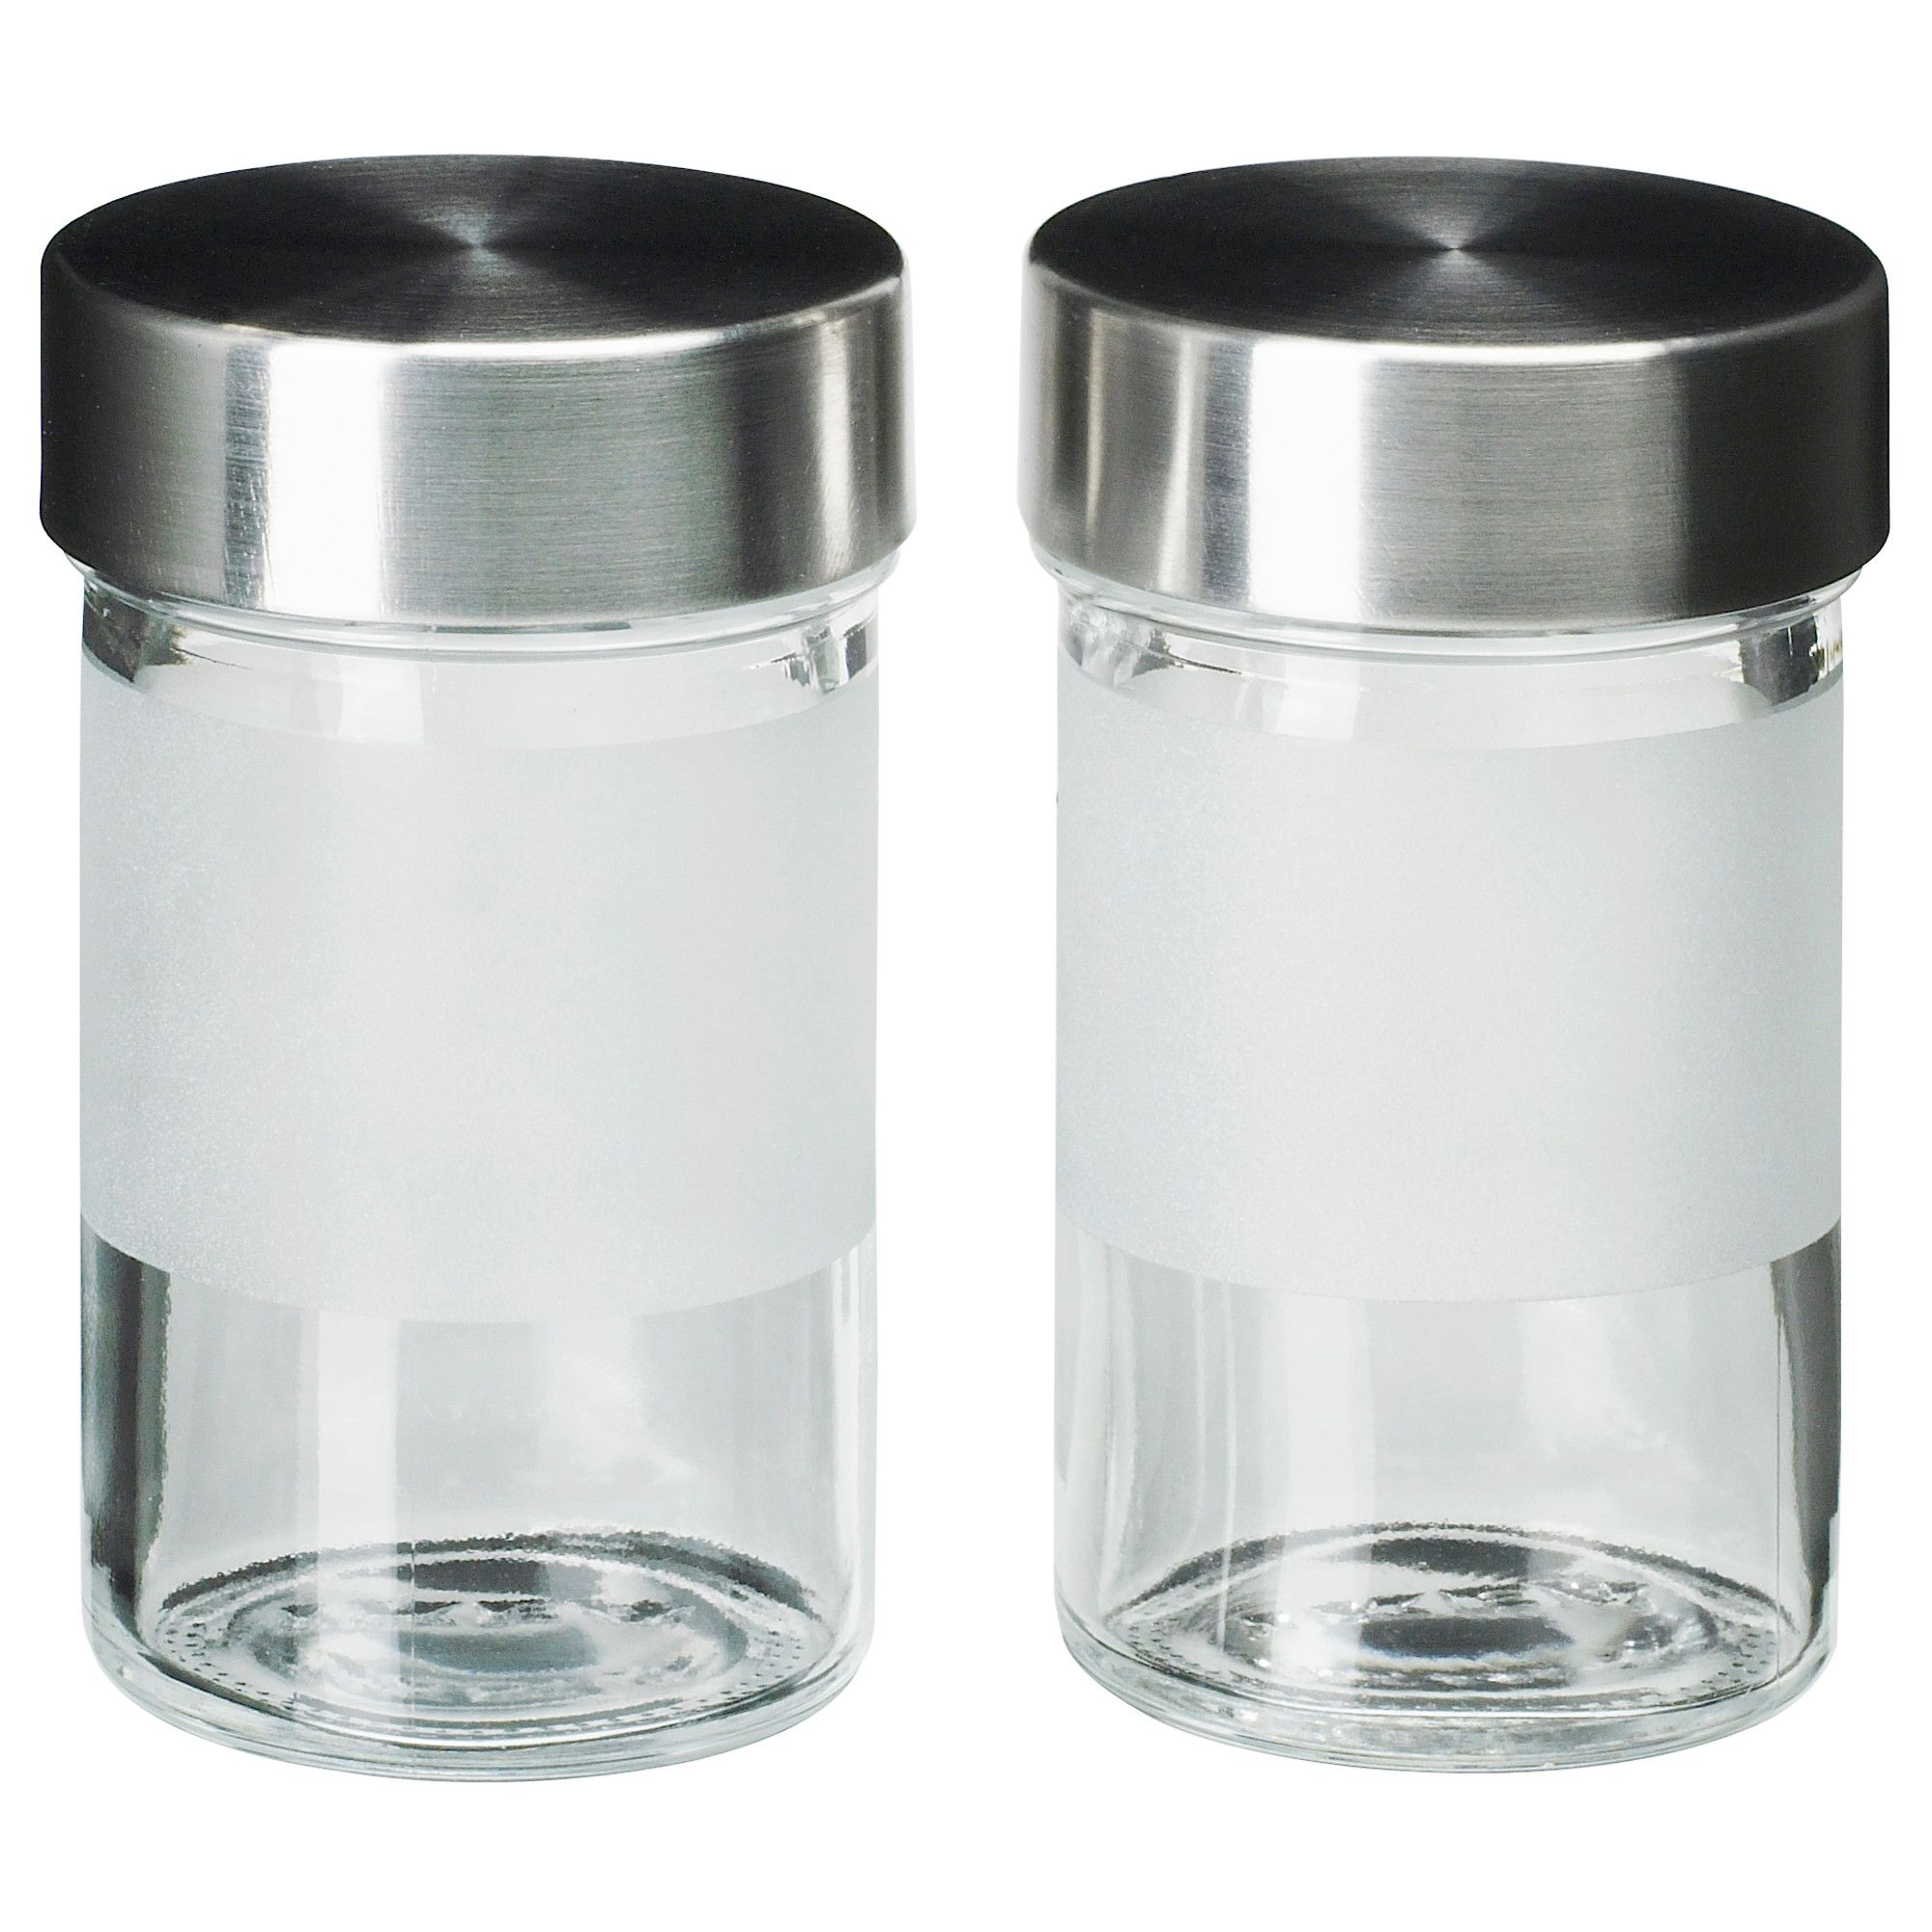 droppar spice jar frosted glass stainless steel ikea shopping go shopping items you may want coordinating spice jars glass canisters mason jars contact paper door racks pantry shelves plastic containers to keep